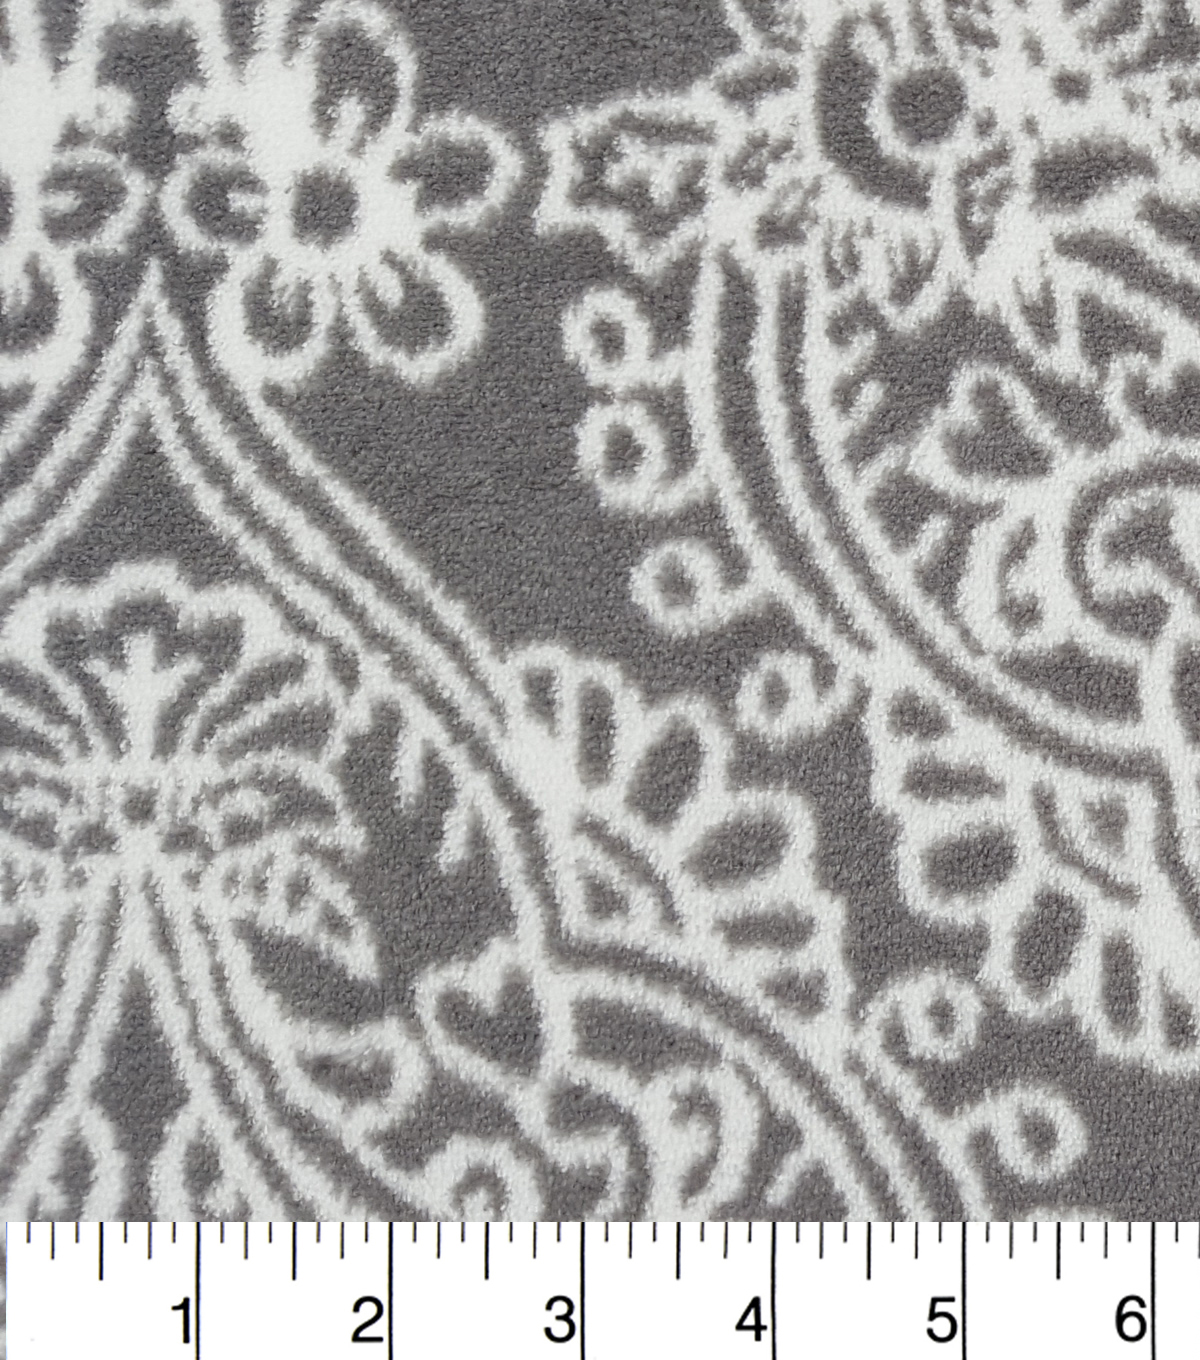 Ultra Fluffy Fleece Fabric 57\u0022-Gry and Wht Ikat Damask